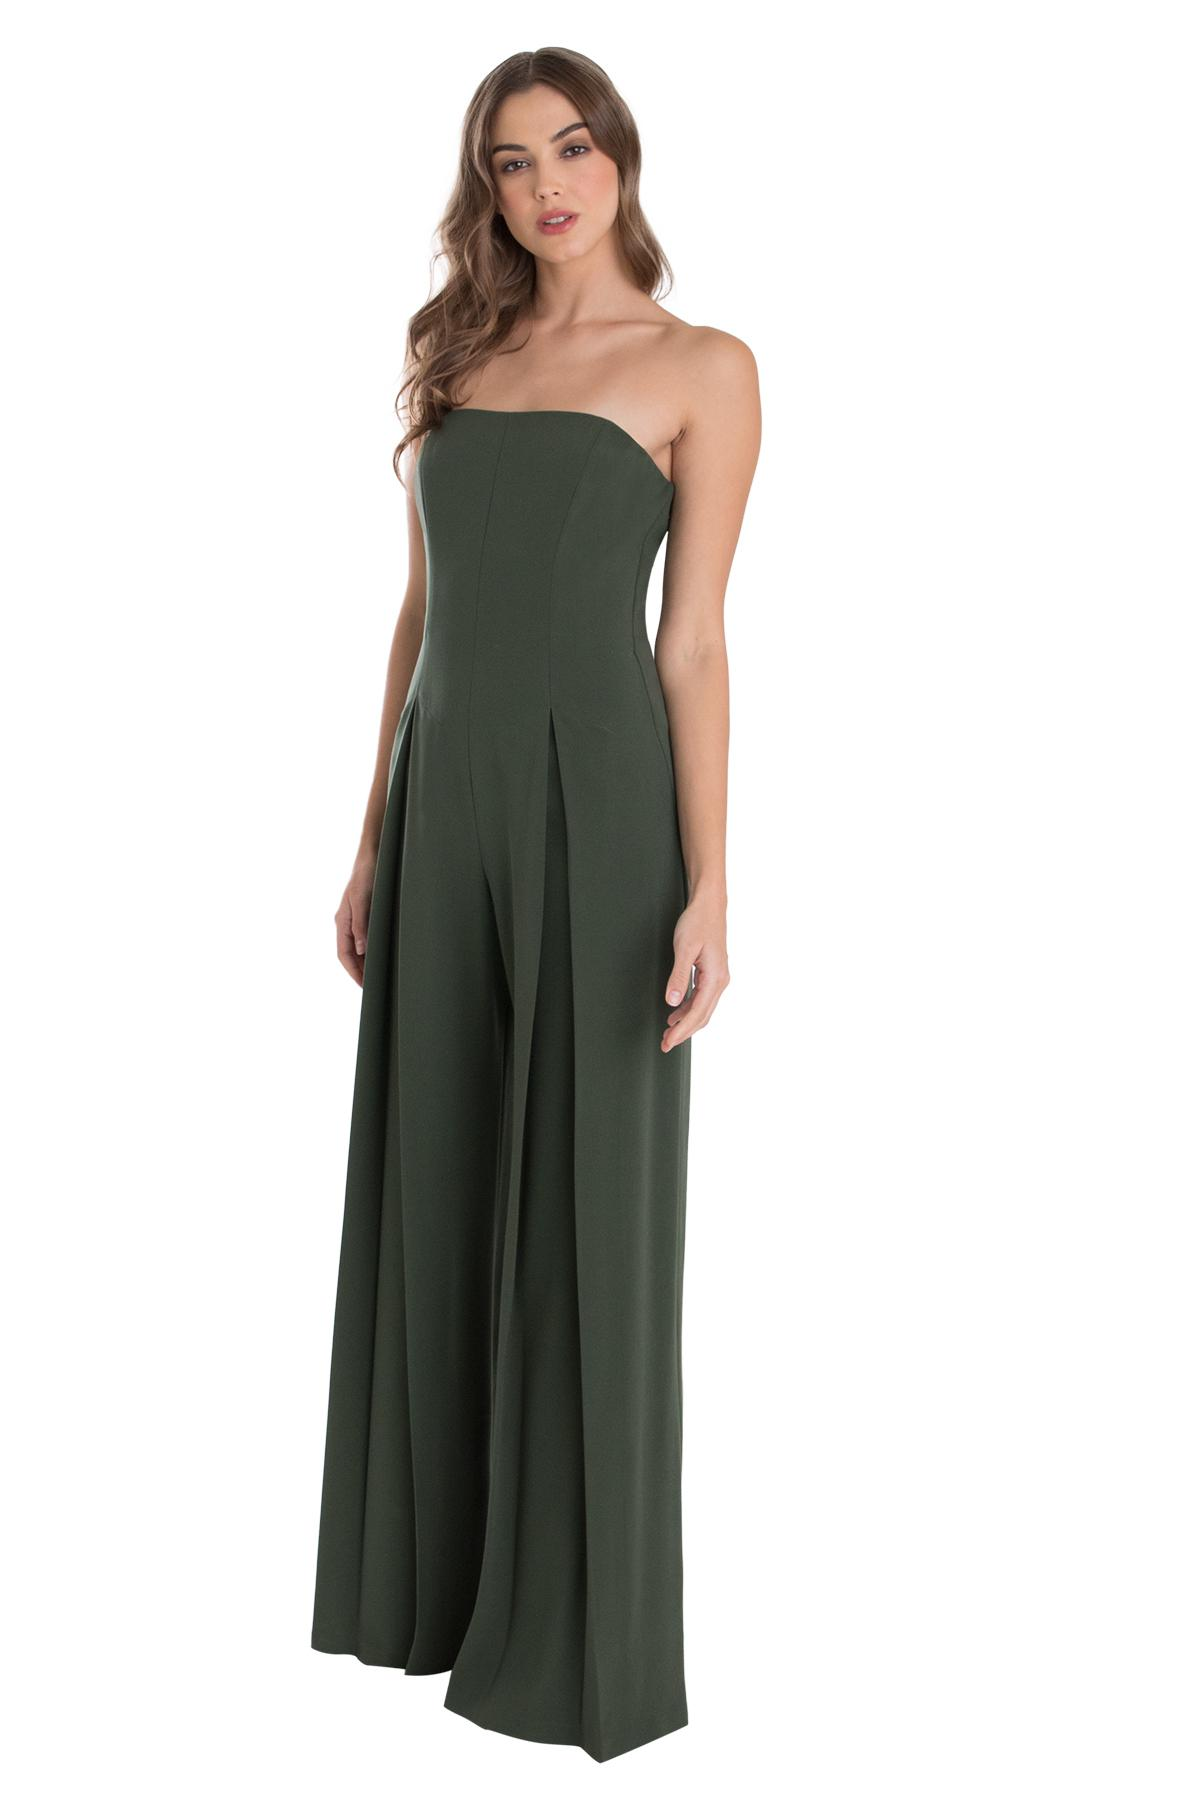 b5d0eecc1351 Black Halo Lincoln Jumpsuit in Green - Lyst